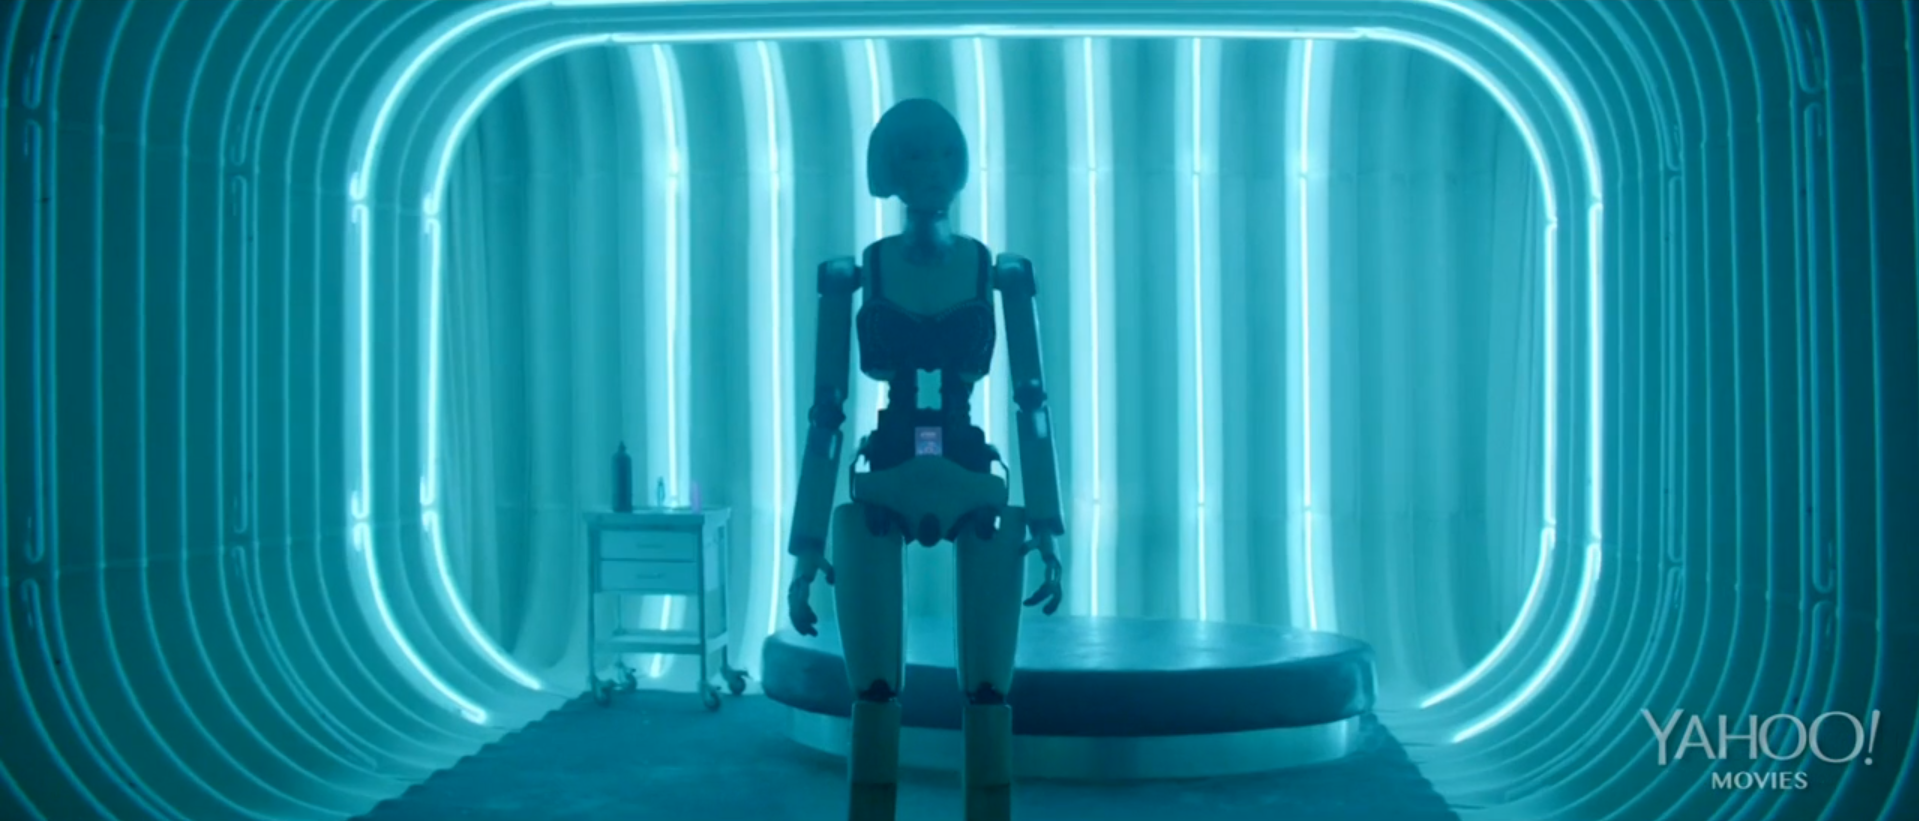 The First Automata Trailer Is Finally Out, And It Looks Spectacular